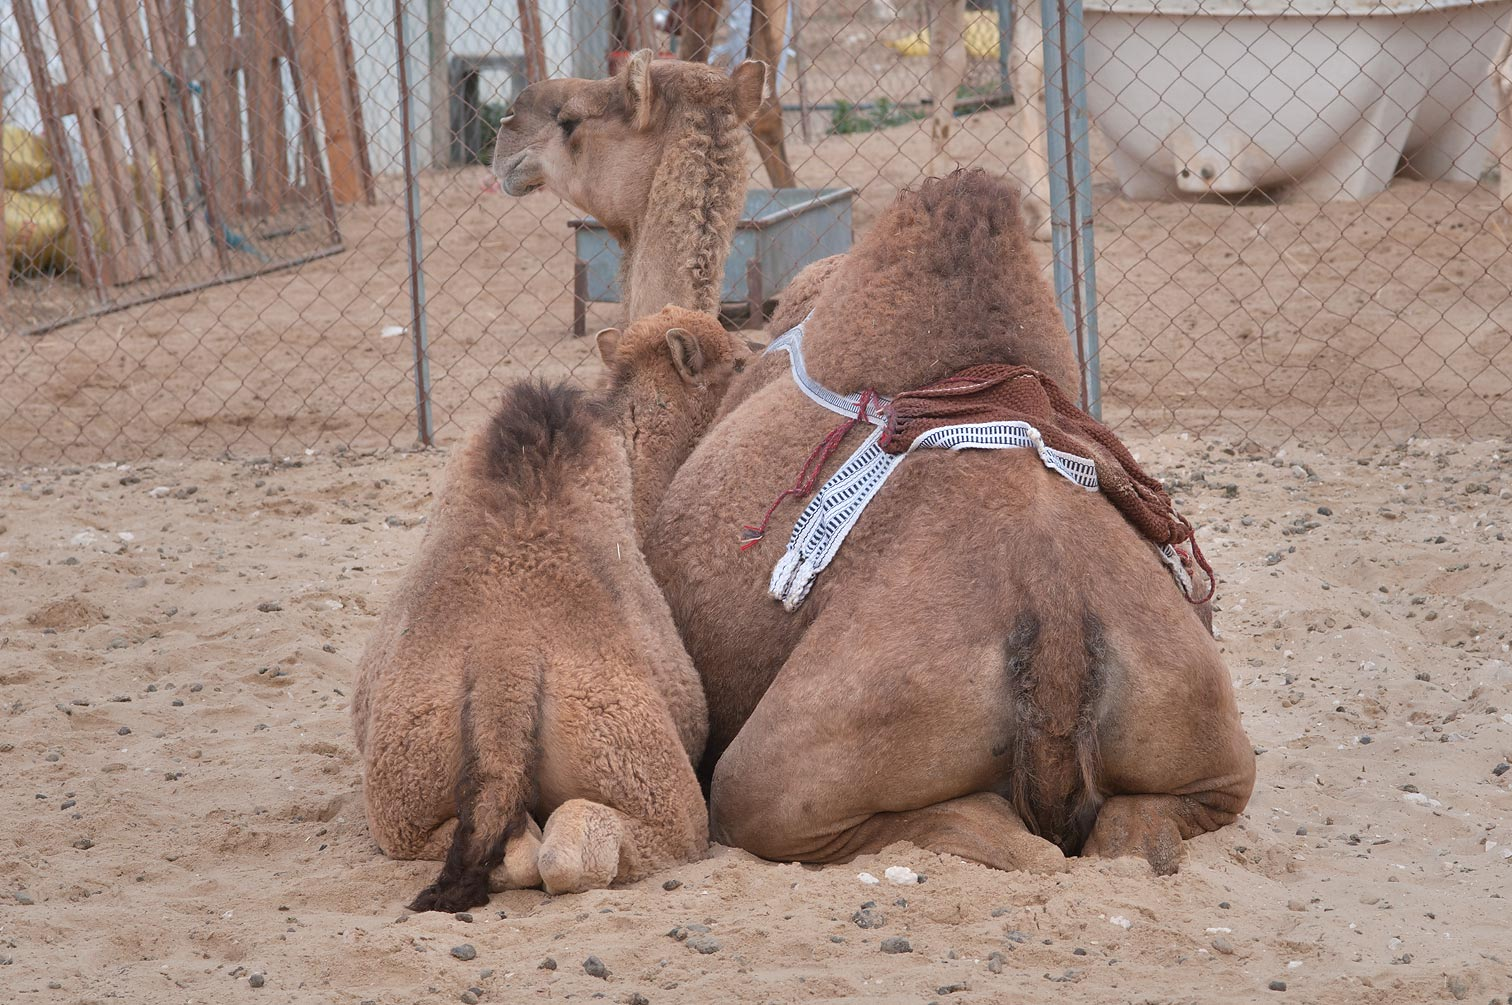 Family of camels in Animal Market (Camel Souq), Wholesale Markets area. Doha, Qatar